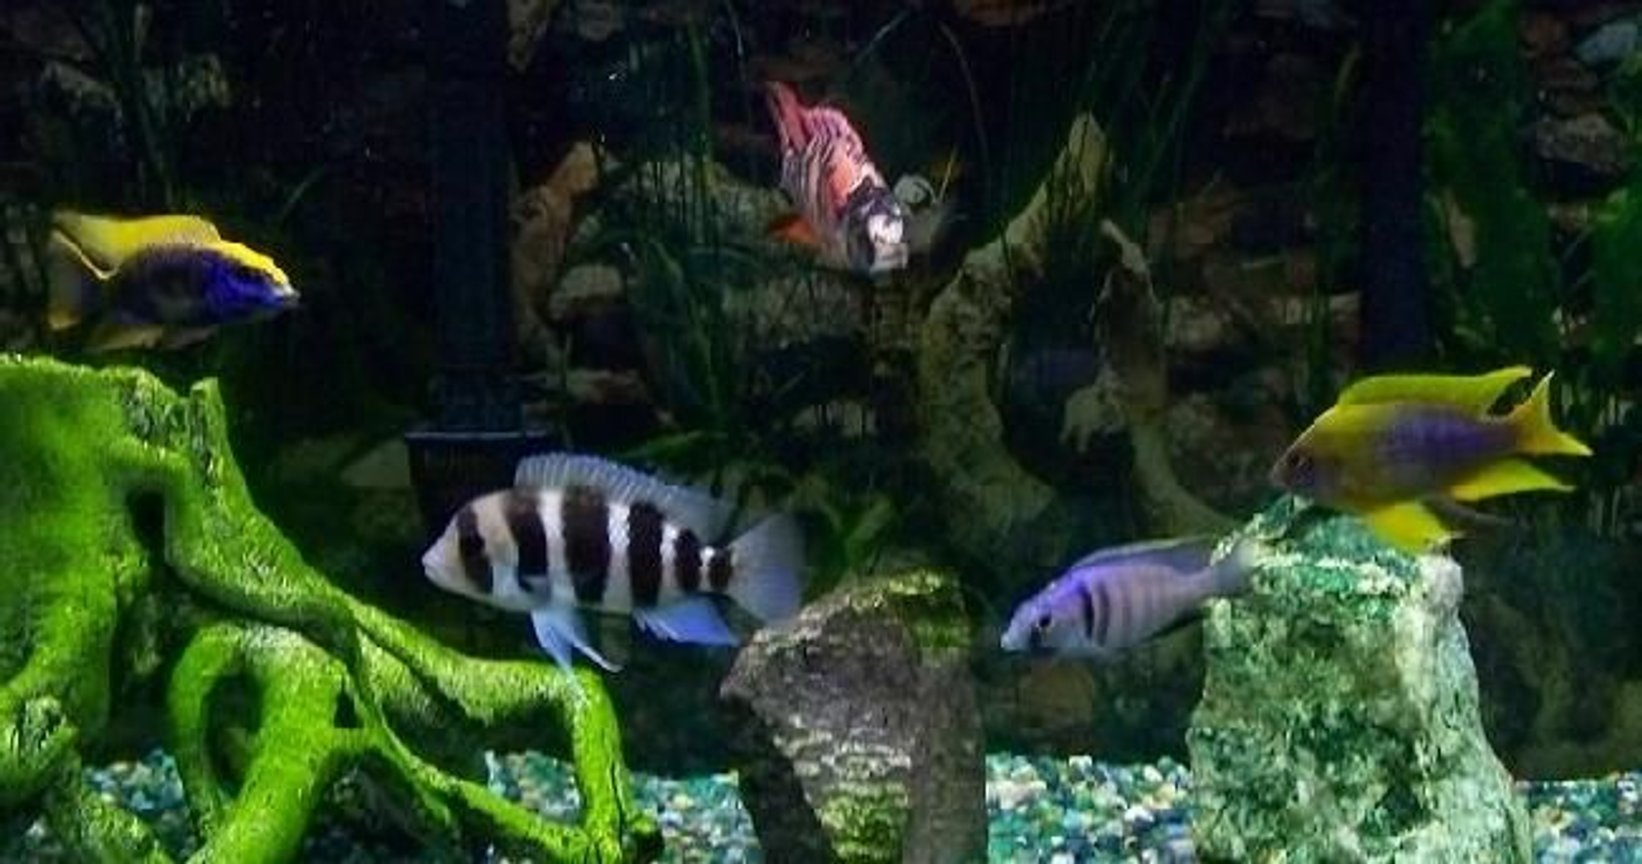 freshwater fish - cyphotilapia frontosa - frontosa cichlid stocking in 54 gallons tank - 75 Gallon: Yellow Blaze, Frontosa, OB Compressiceps, Deep Water Hap, and Lemon Jake